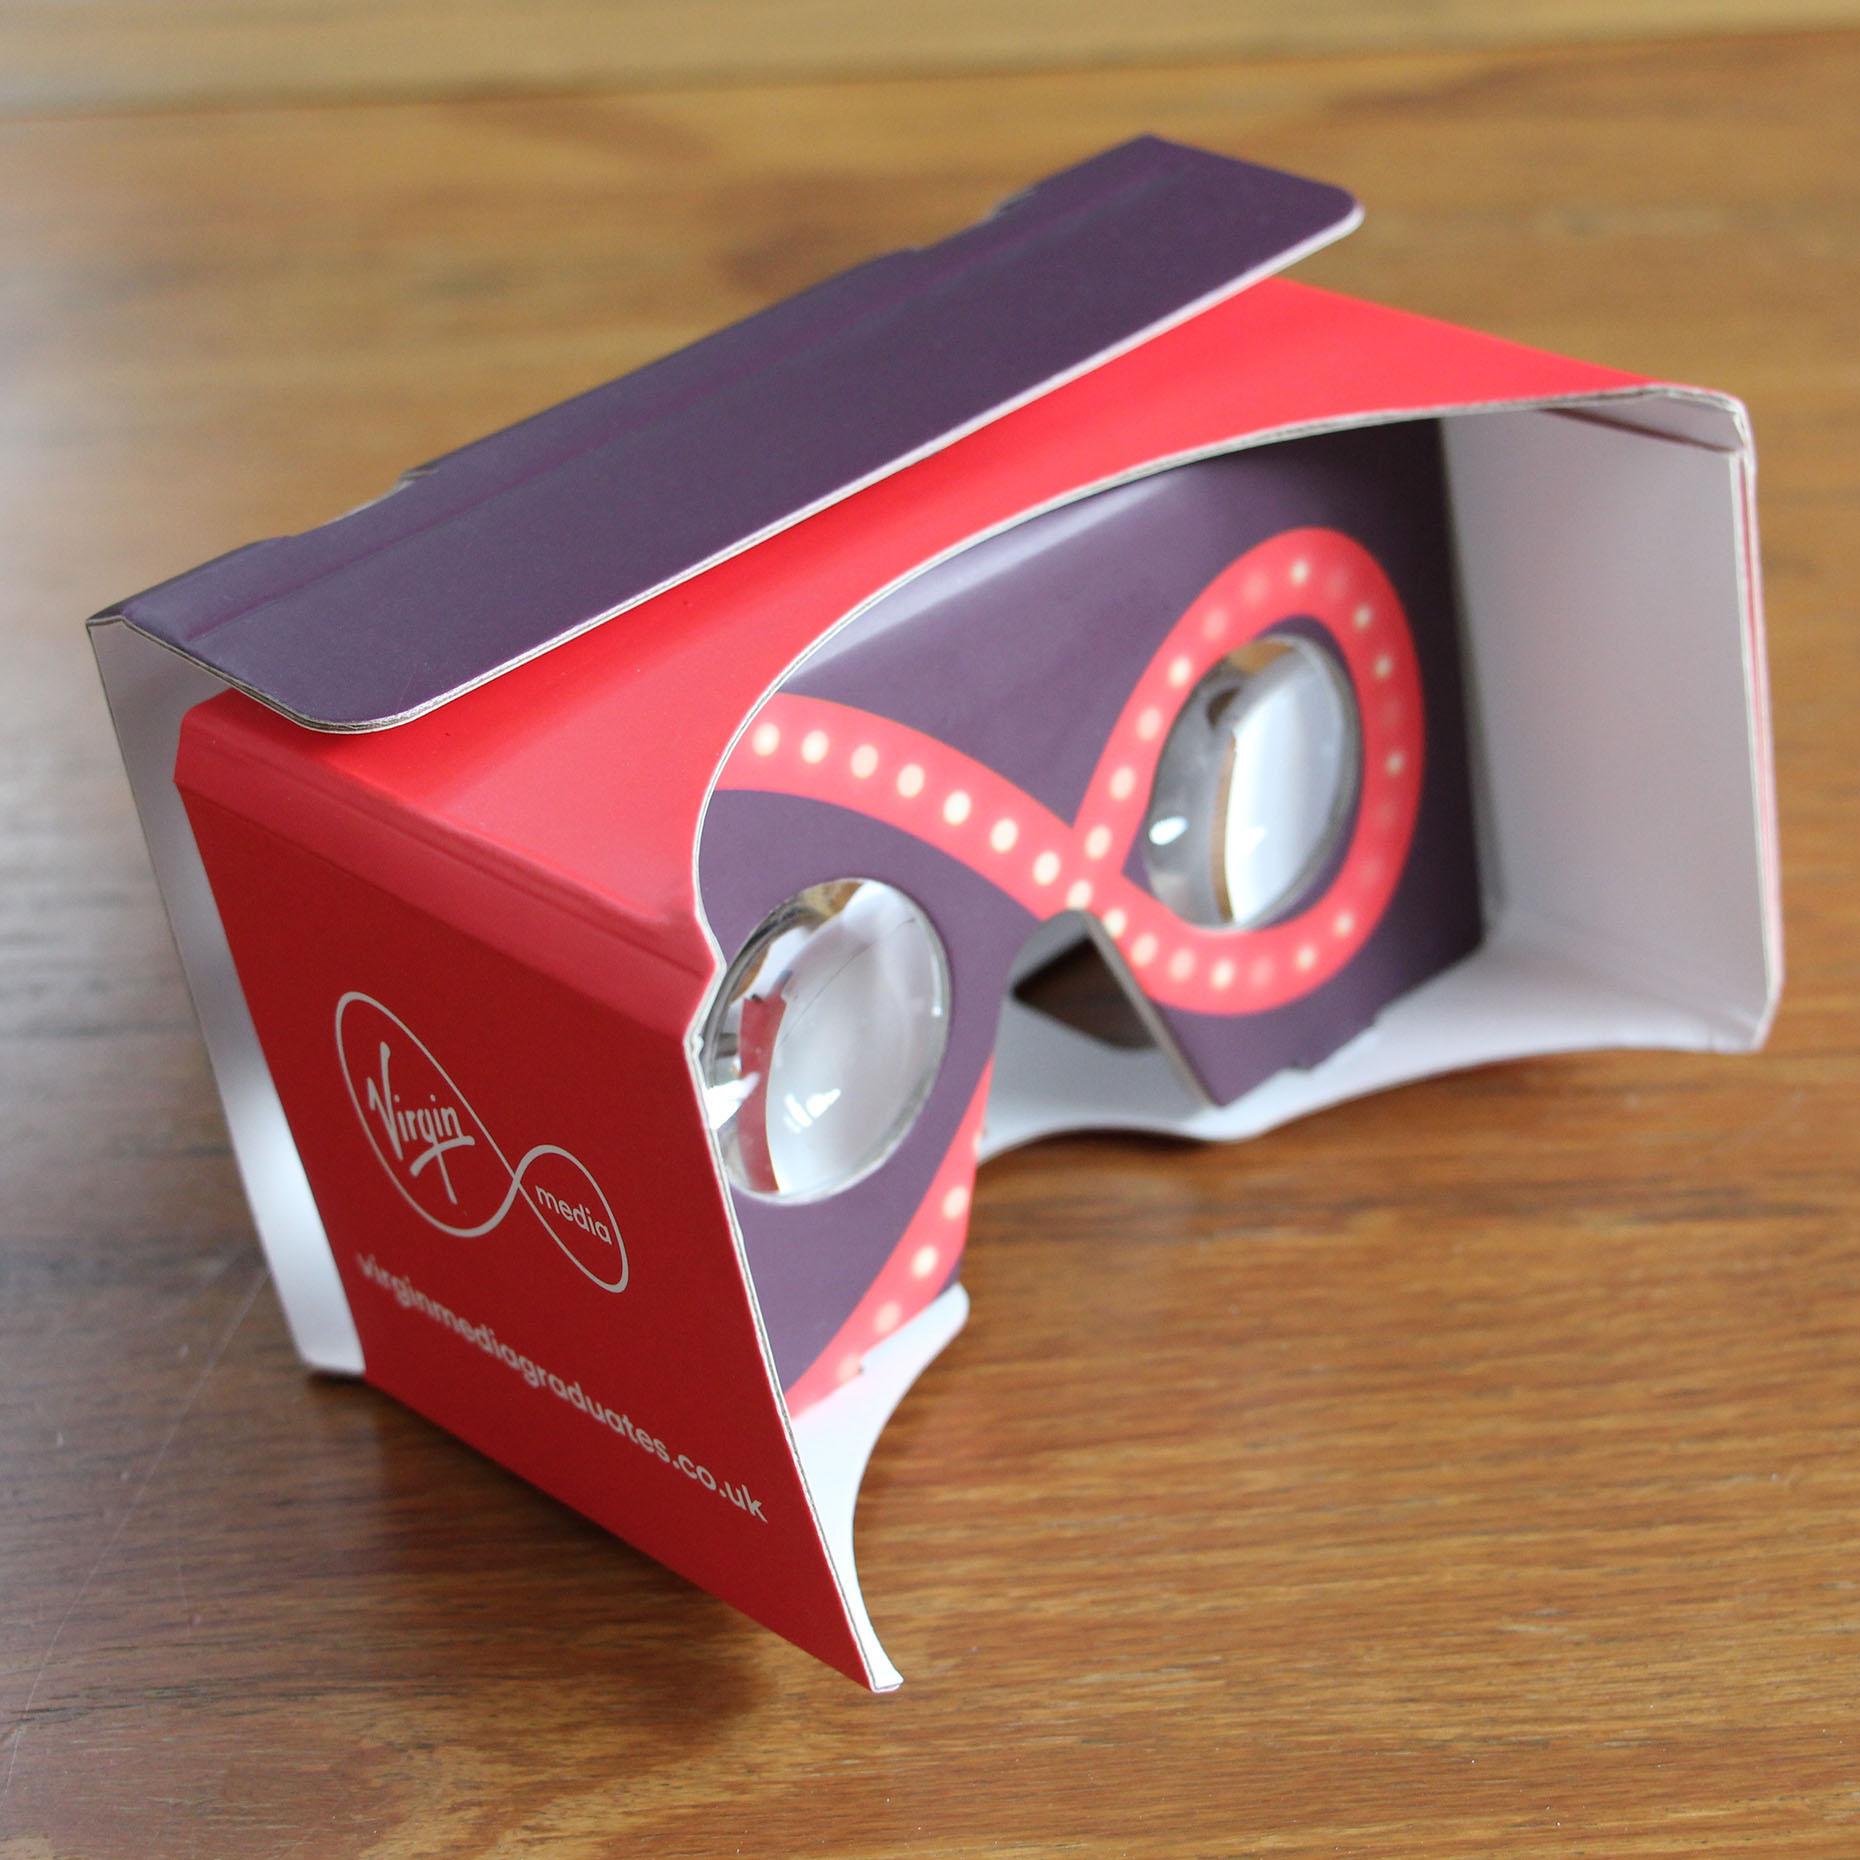 Virgin Media VR Goggles